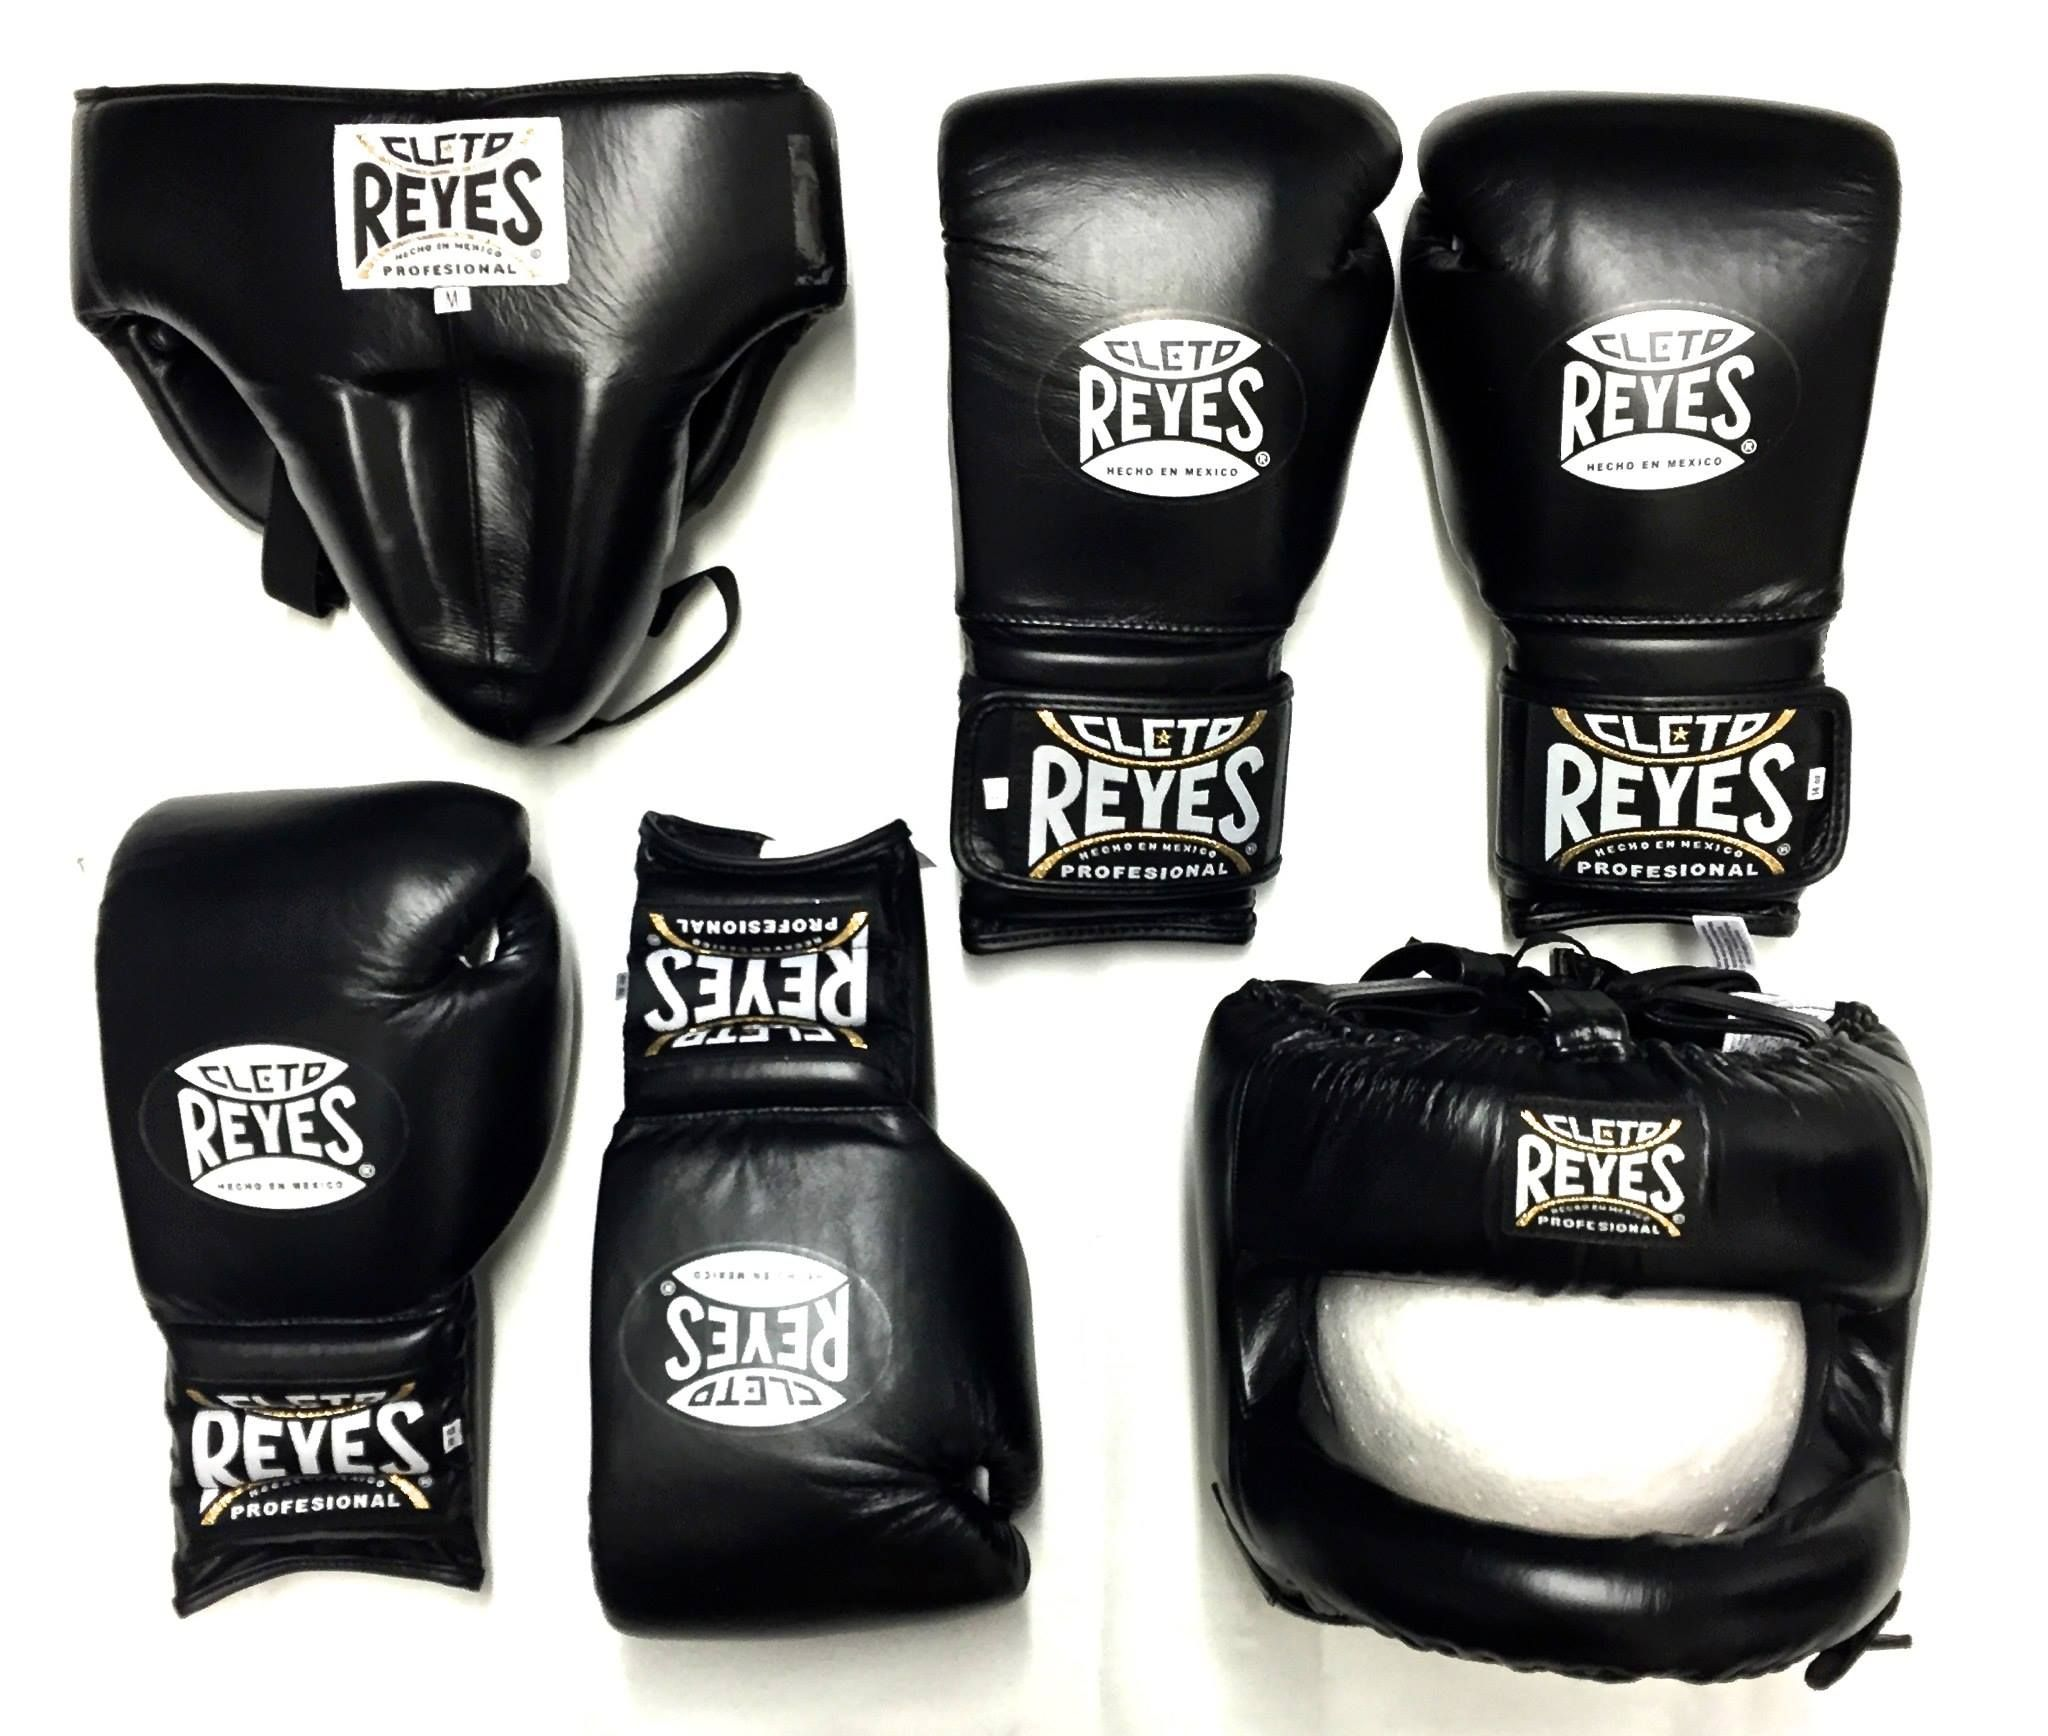 CLETO REYES - All black sparring gear!!  Check out the full range in the link below: www.geezersboxing.co.uk/catalogsearch/result/?manufacturer=165&q=cleto  #cleto #reyes #cletoreyes #allblack #black #sparring #boxing #pro #geezers